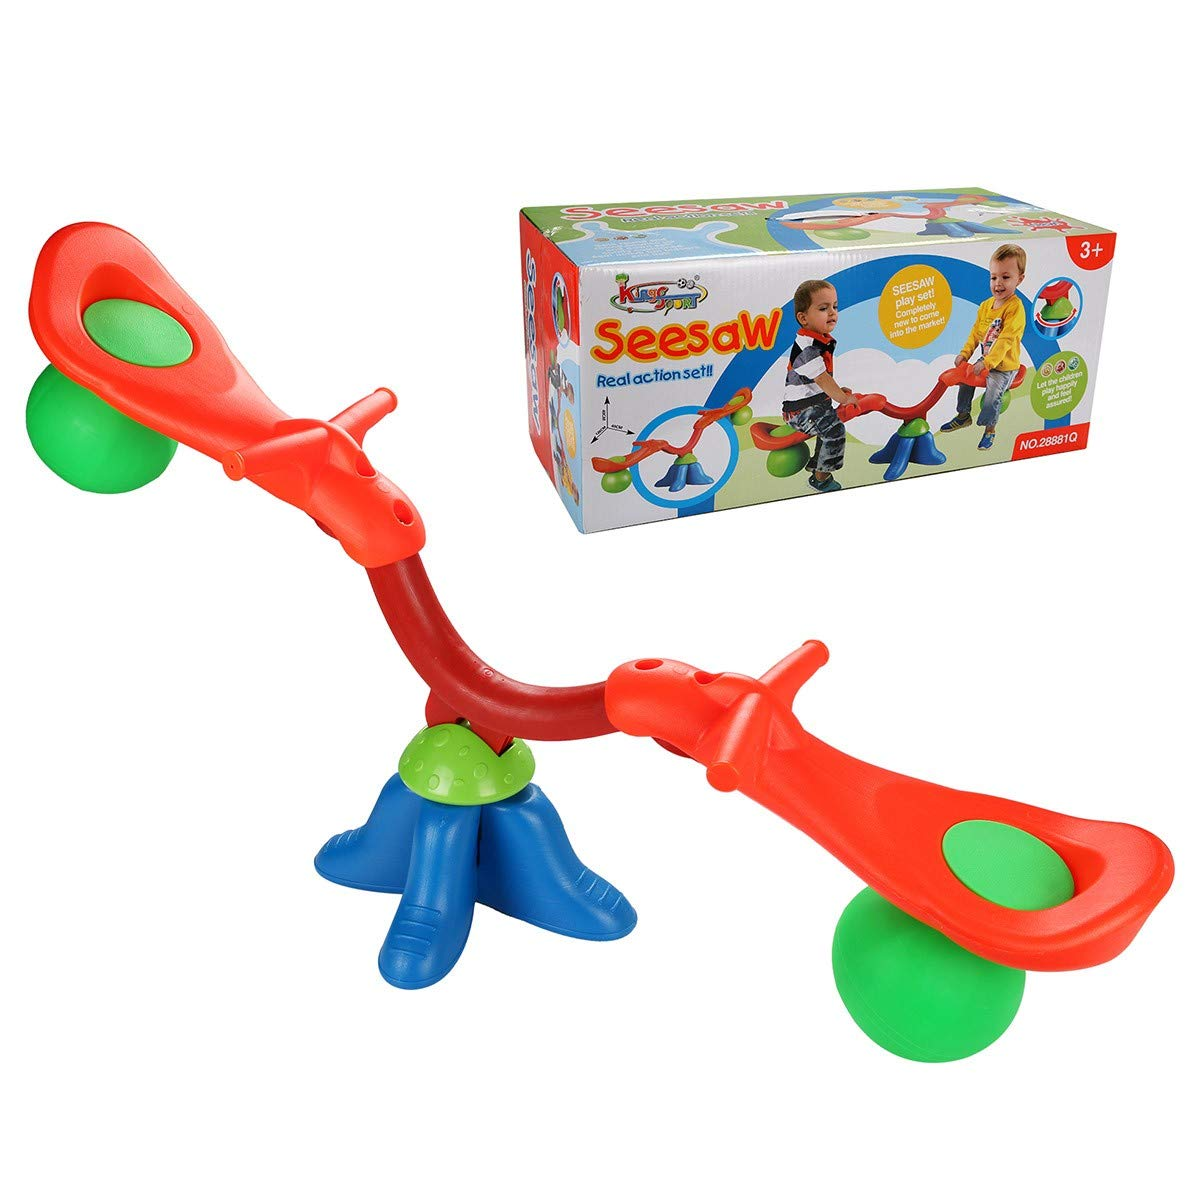 Kids Seesaw 360 Degree Spinning Teeter Totter Bouncer Bright and Cheerful Color Easy-Grip Handles by EnjoyShop (Image #3)